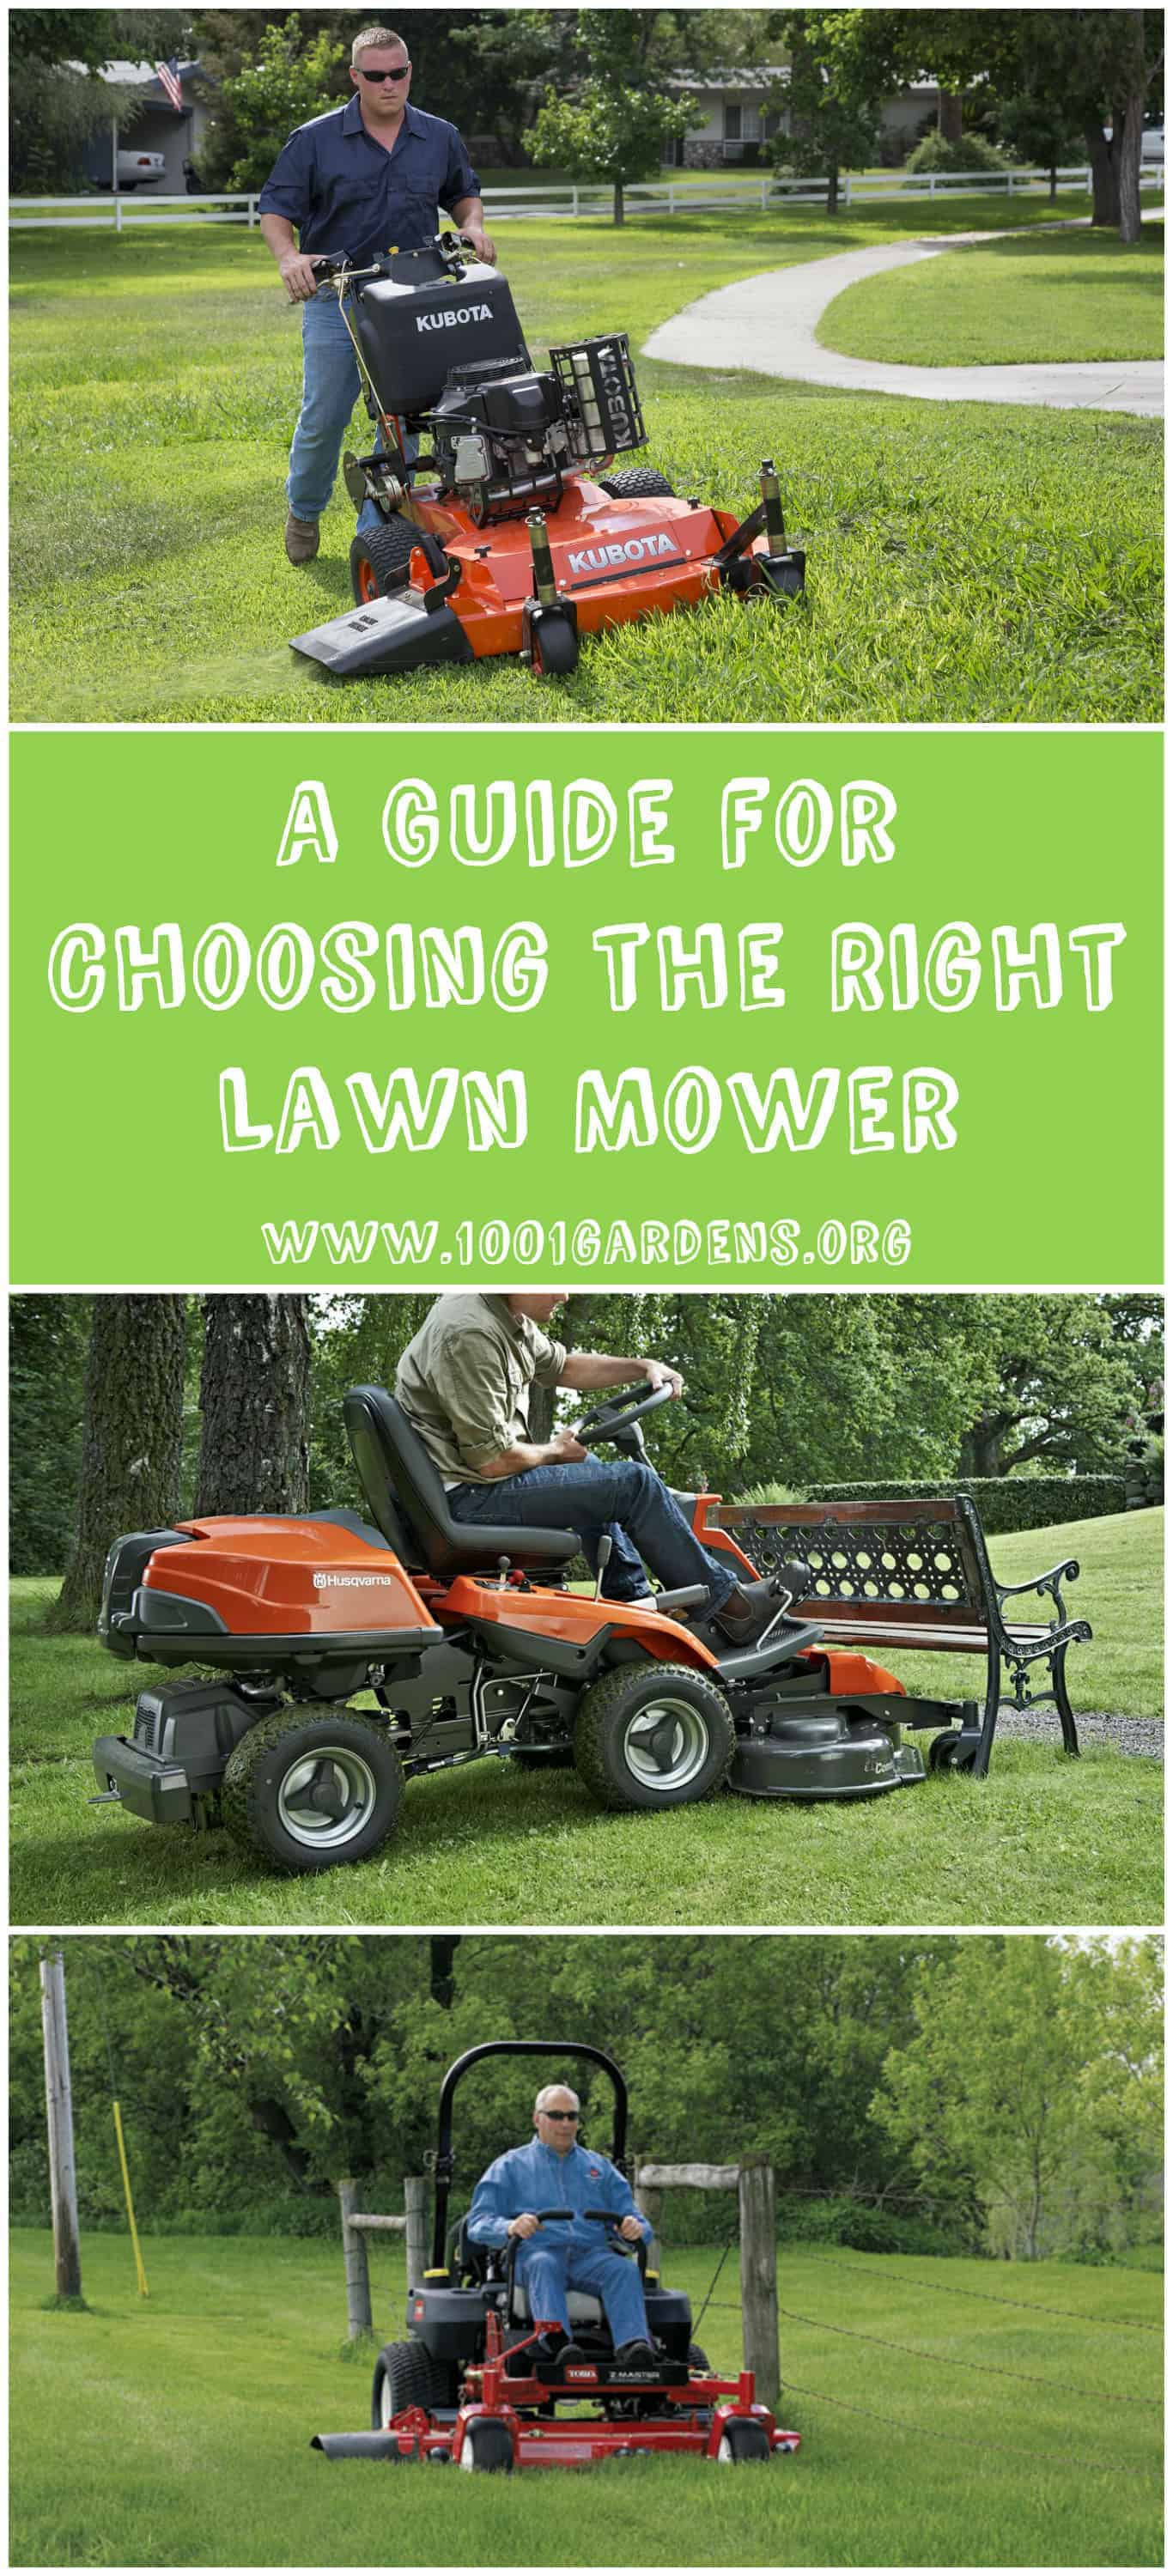 Lawn Mower: A Guide for Choosing the Right One - flowers-plants-planters